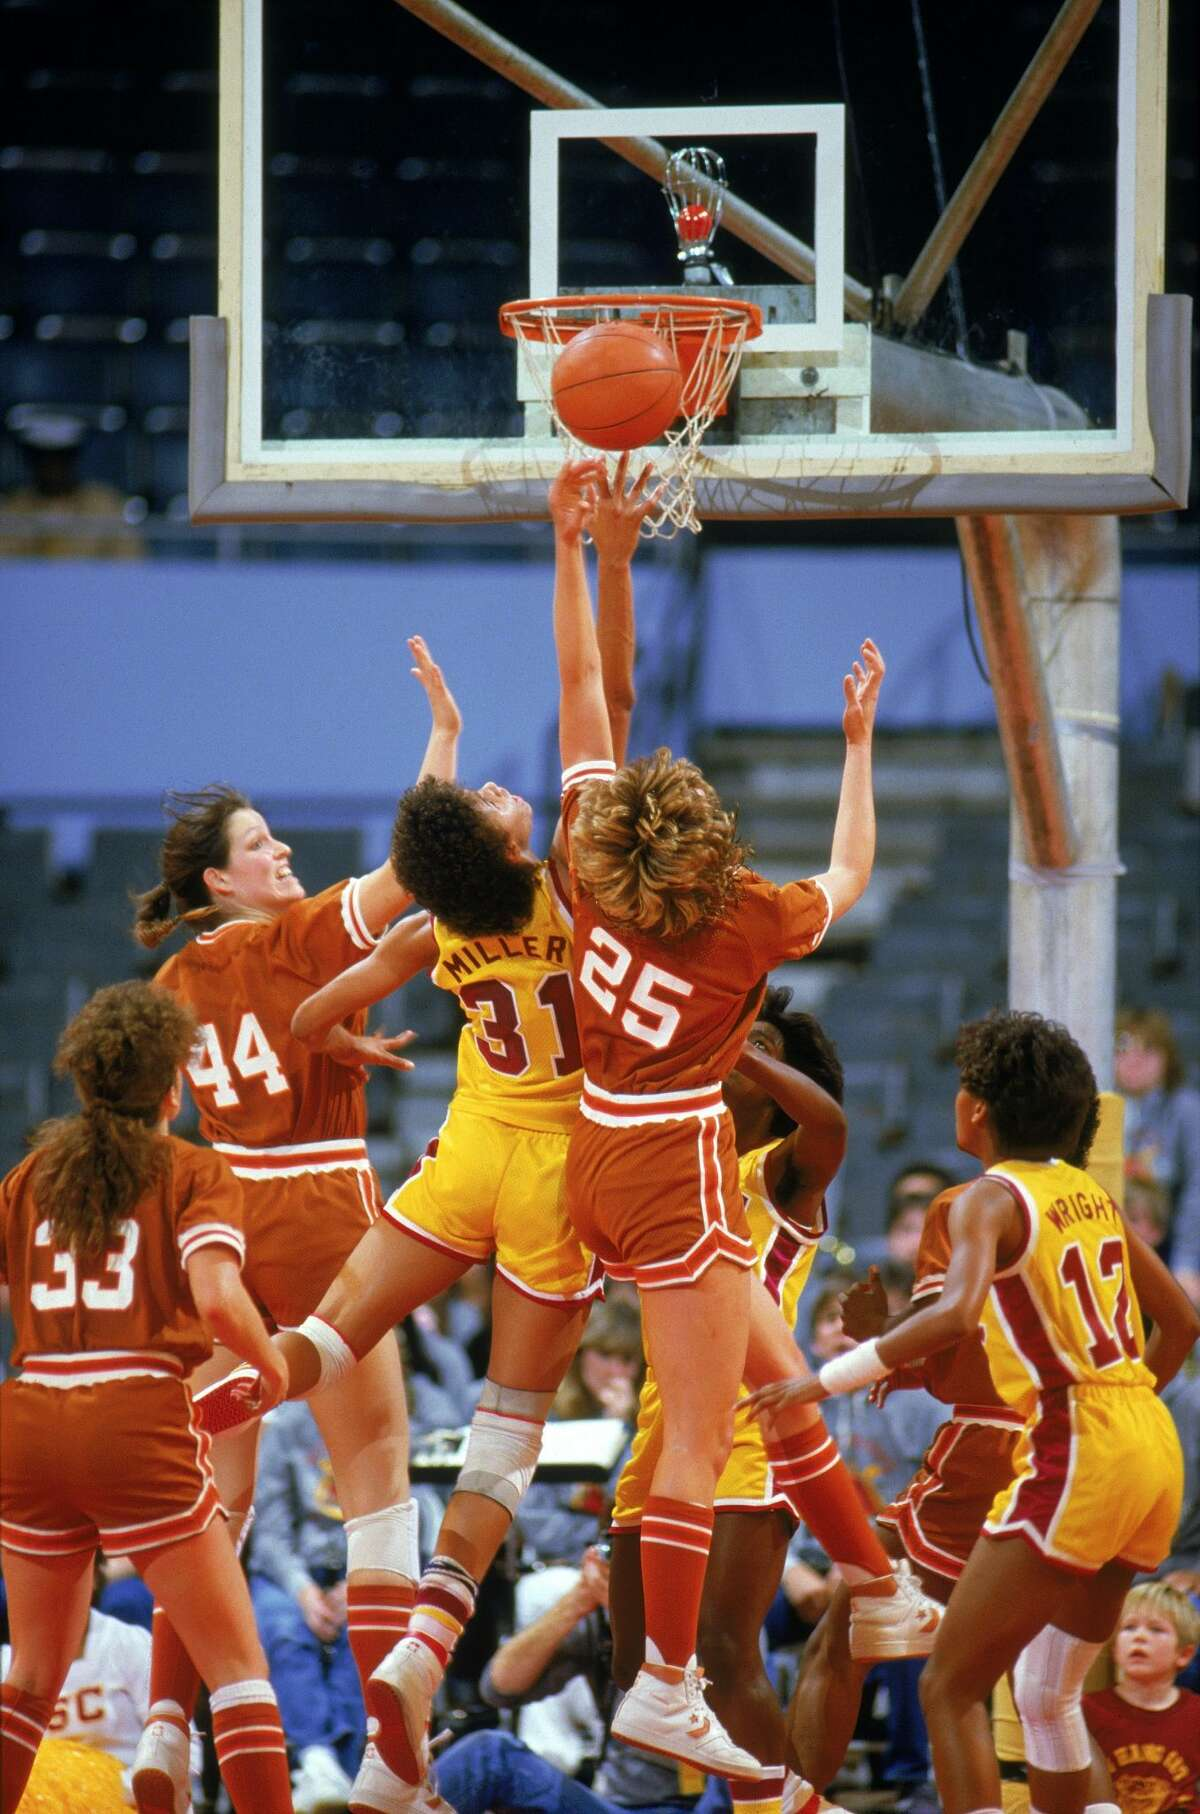 AUSTIN, TX - Cheryl Miller #31 of USC Trojans puts a shot up during a women basketball game against Texas Longhorns in Austin, Texas. Cheryl Miller's college career lasted from 1983-1986. (Photo by: Rick Stewart/Getty Images)